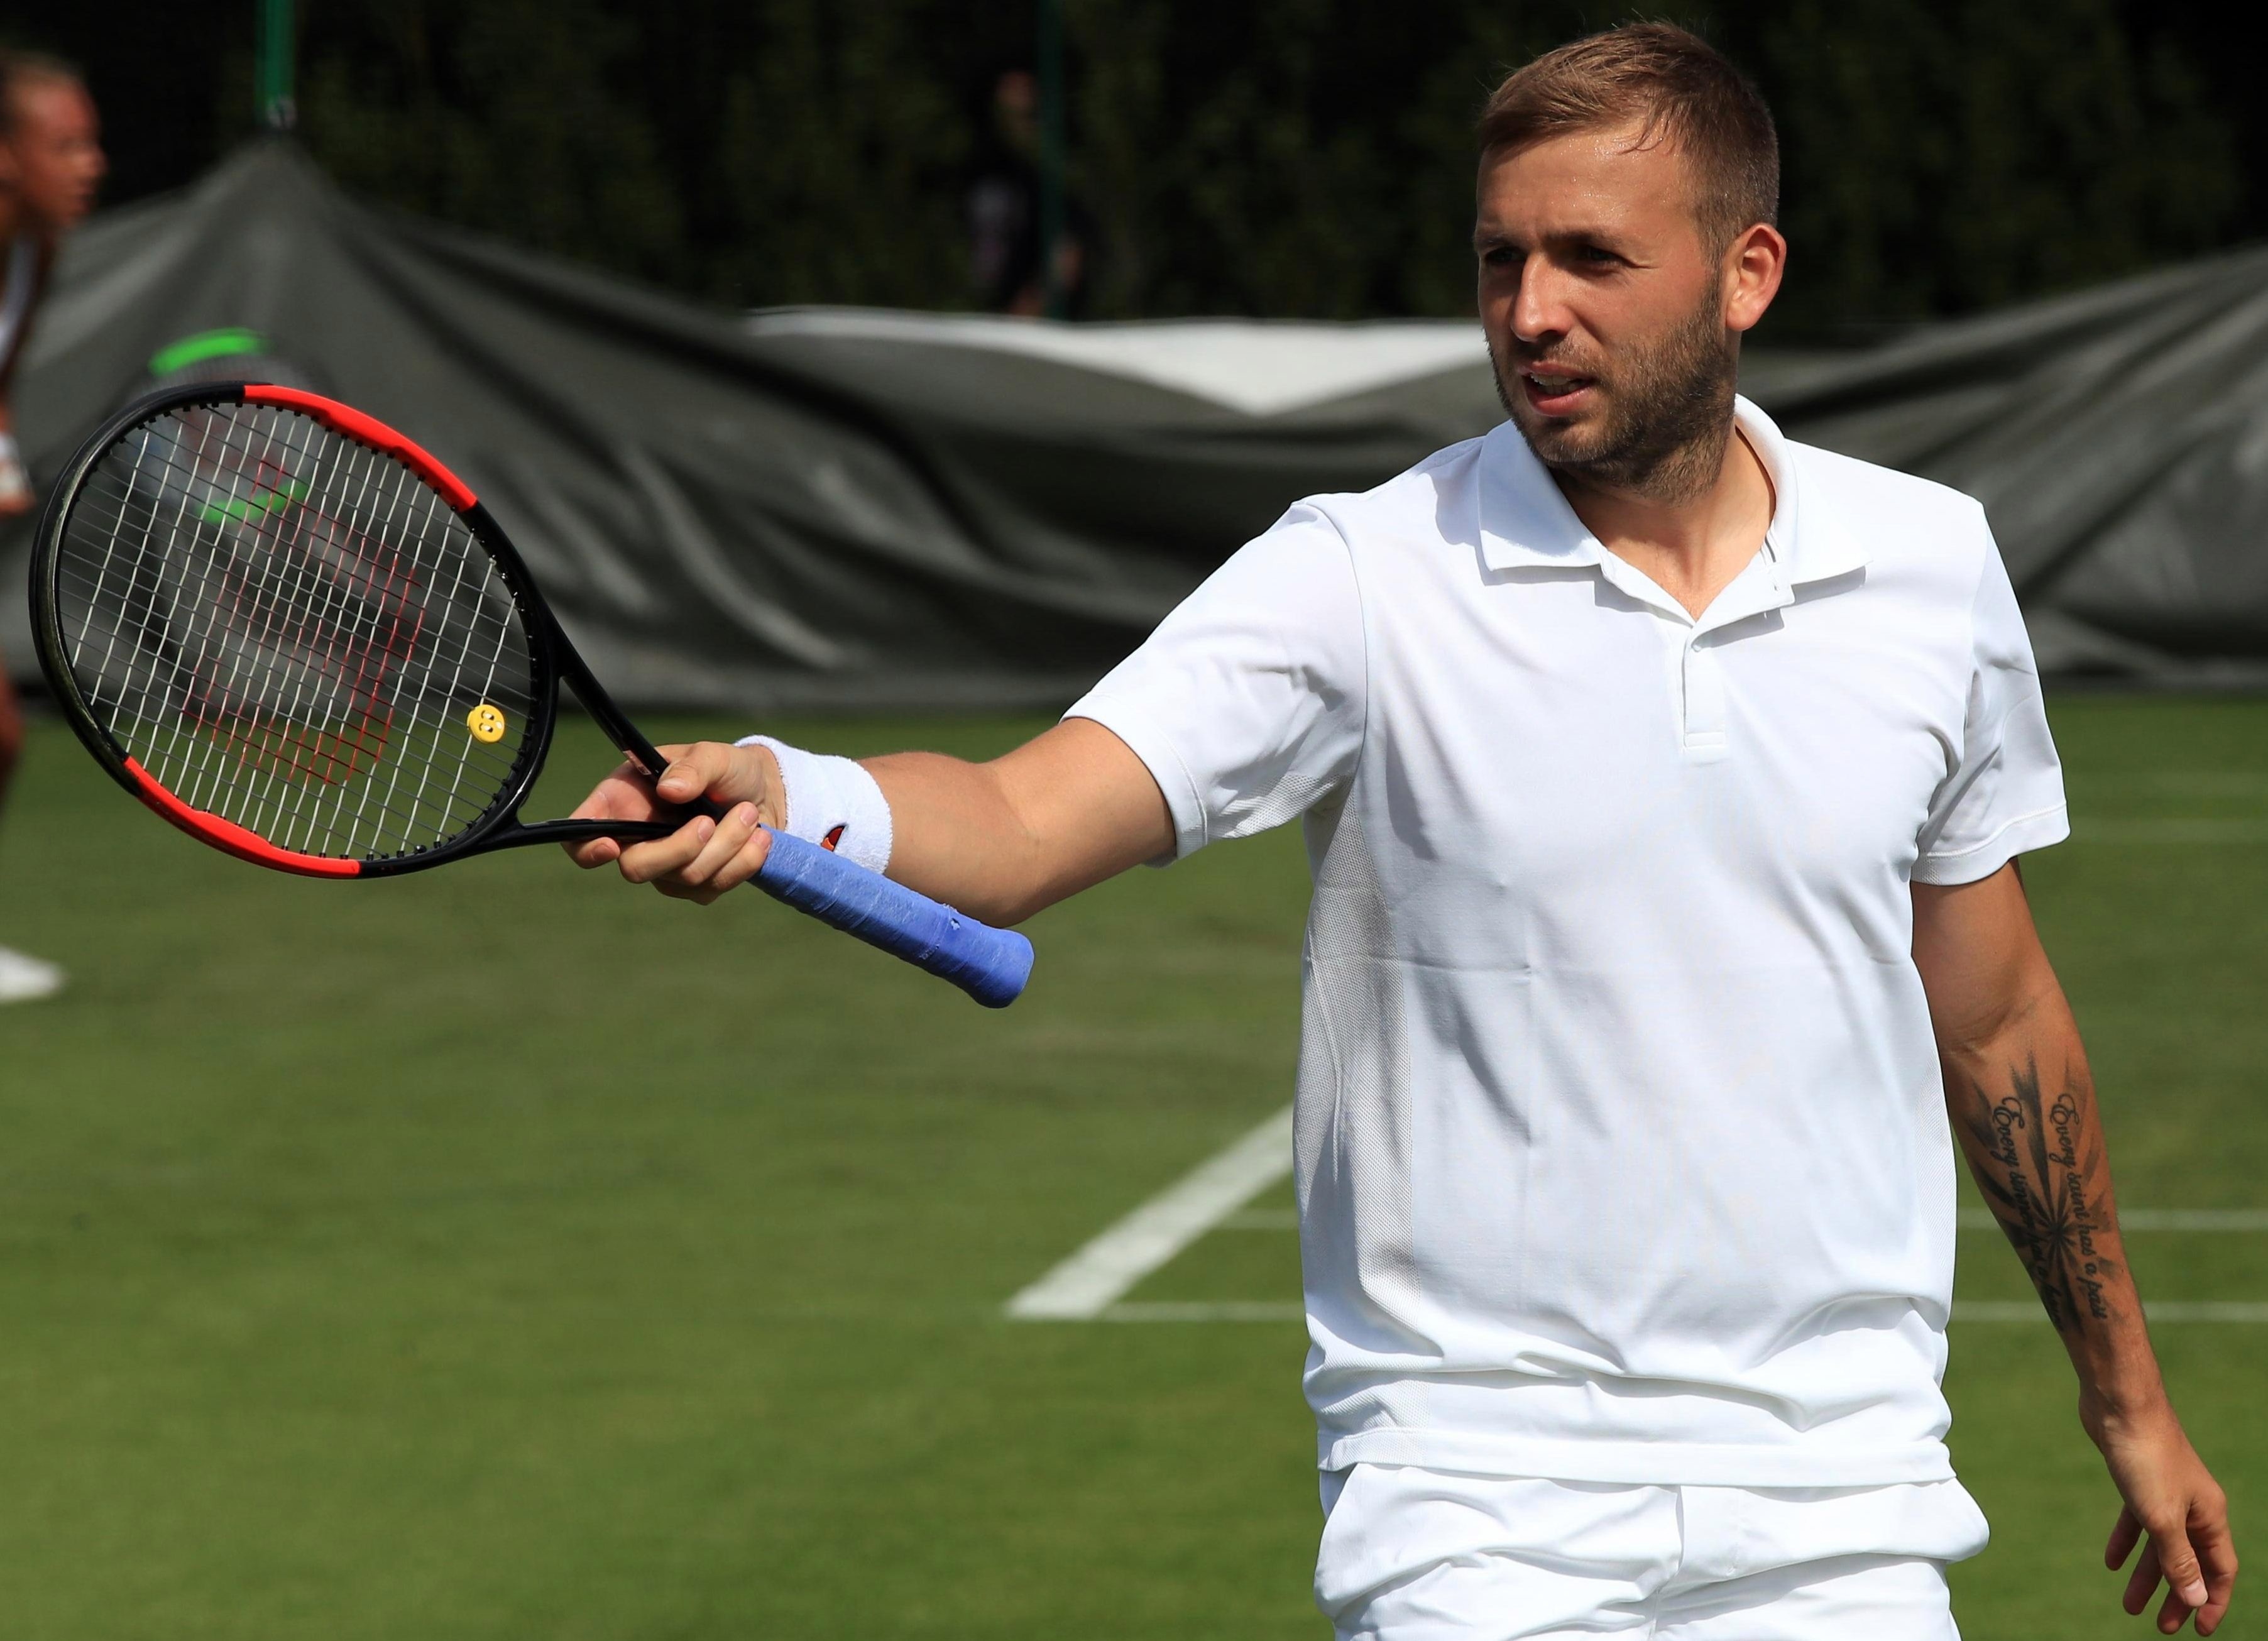 Dan Evans has been denied a wildcard and must pre-qualify